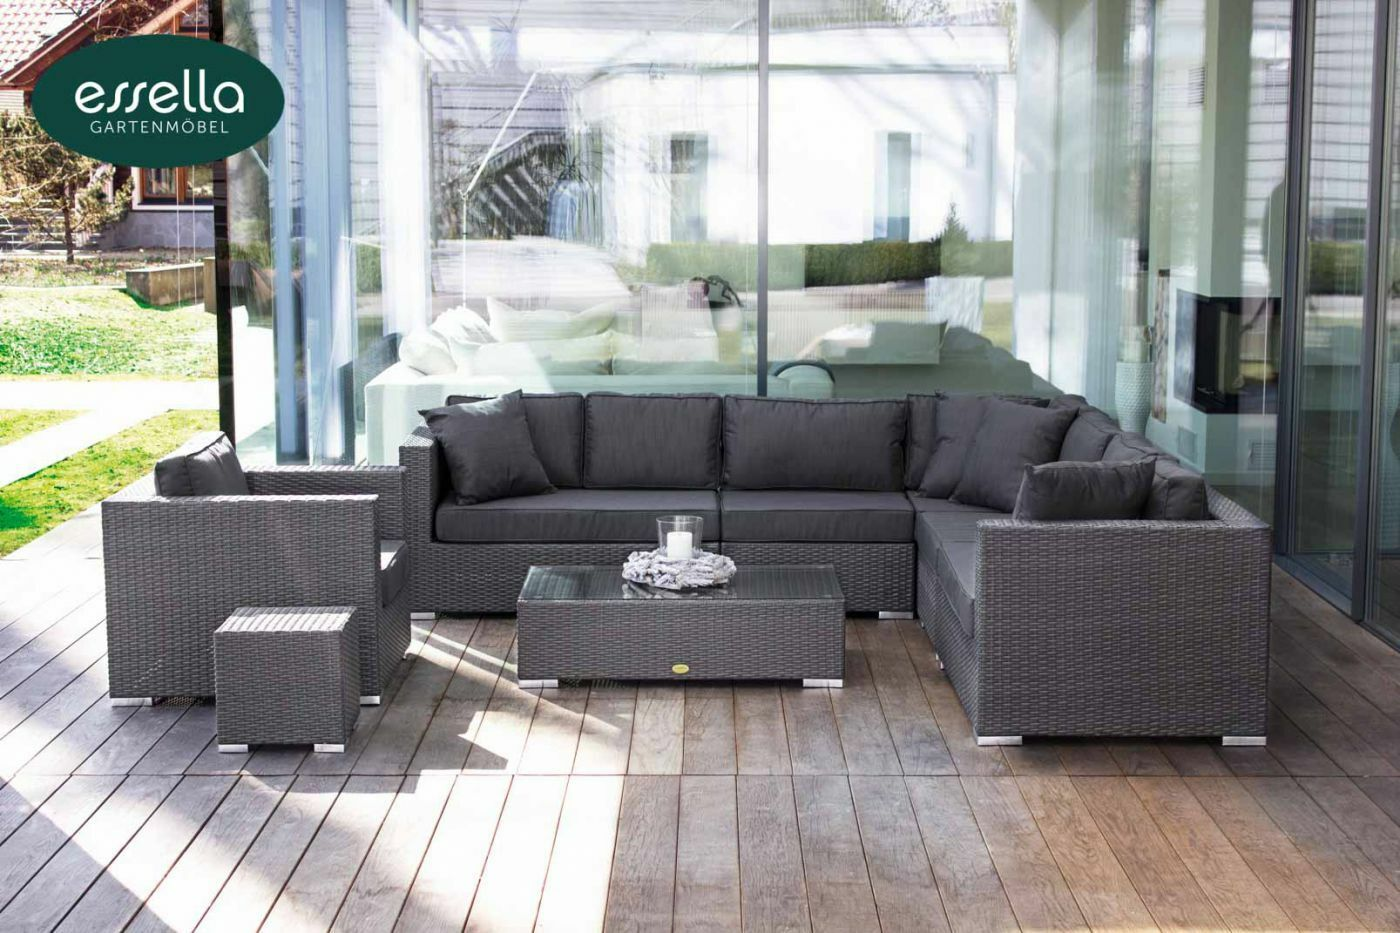 essella polyrattan garten lounge gartenm bel sitz gruppe garnitur sofa couch neu eur. Black Bedroom Furniture Sets. Home Design Ideas